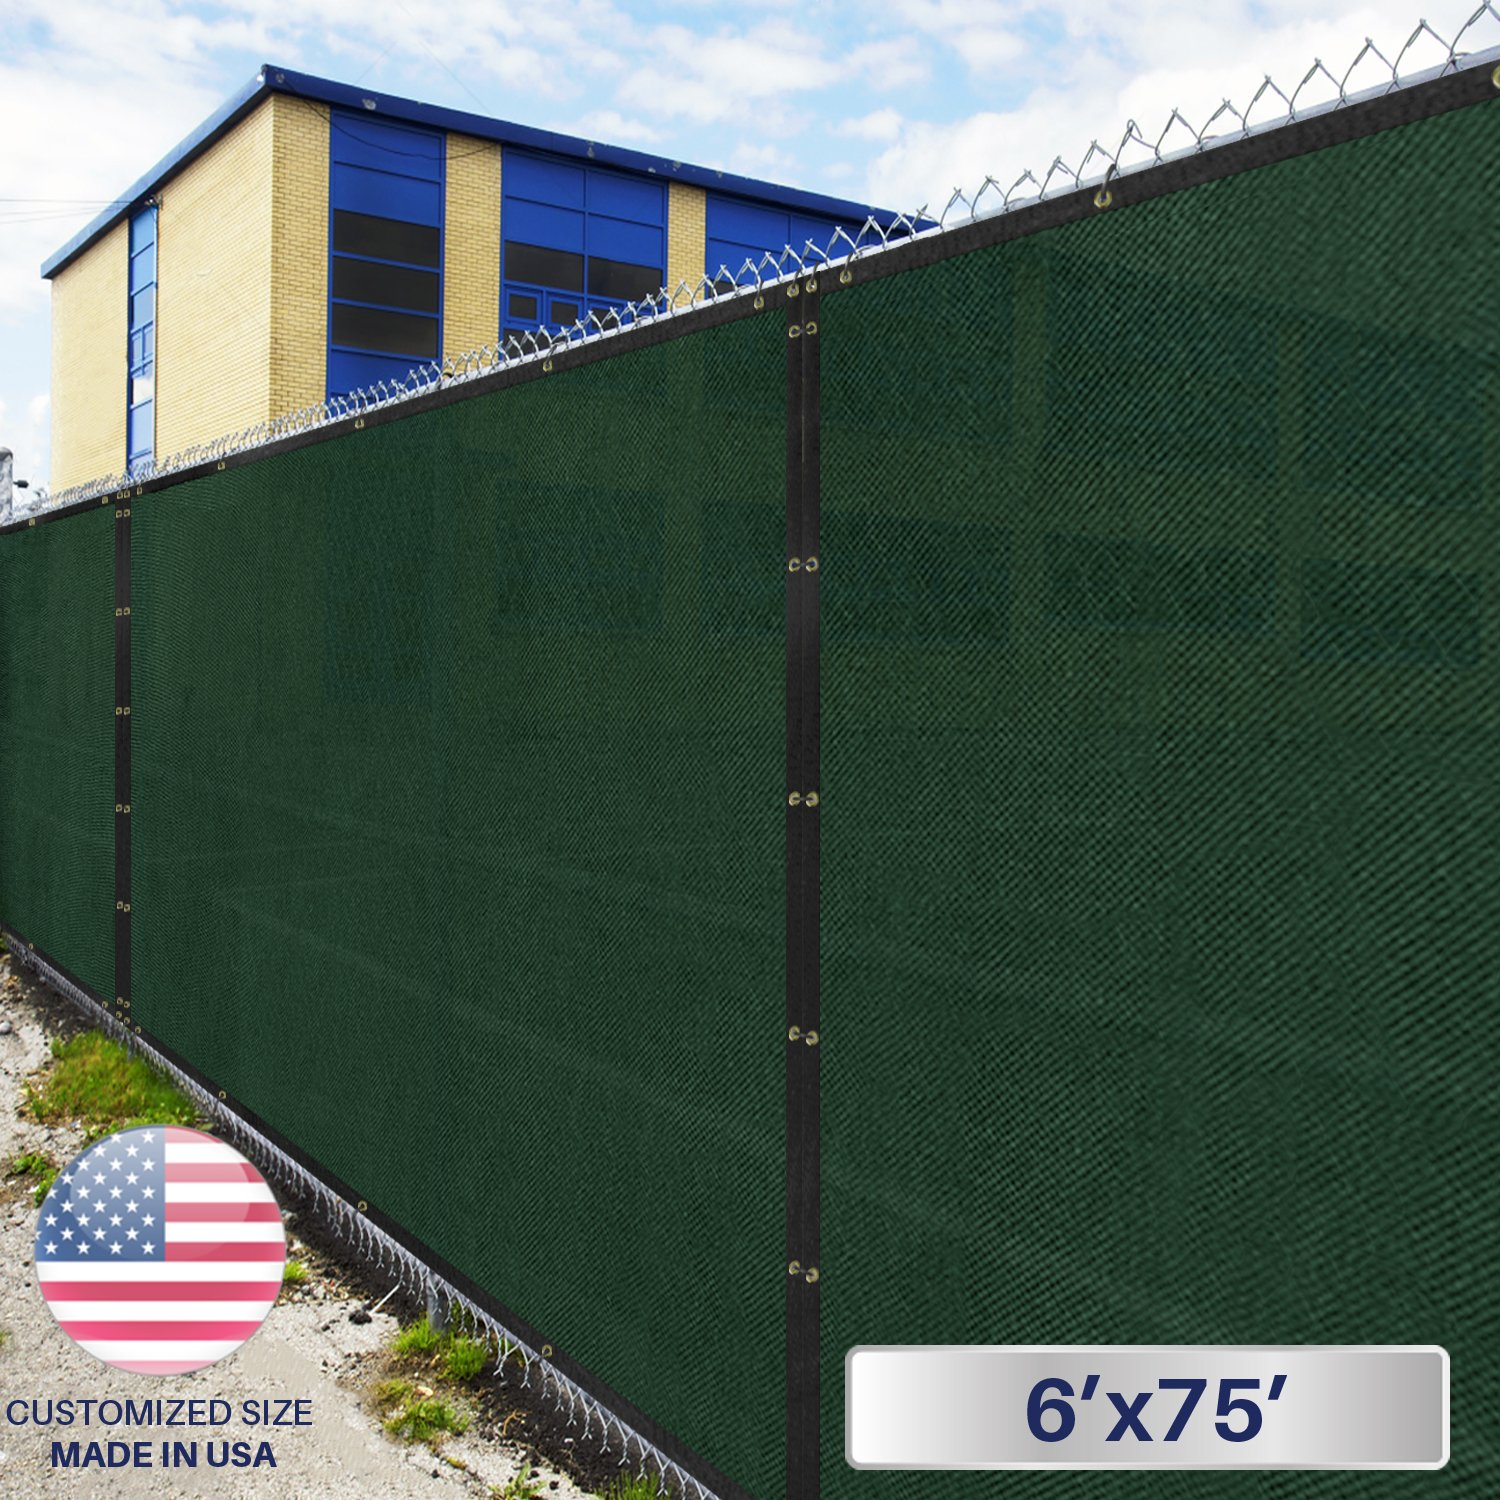 6' x 75' Privacy Fence Screen in Green with Brass Grommet 85% Blockage Windscreen Outdoor Mesh Fencing Cover Netting 150GSM Fabric - Custom Size